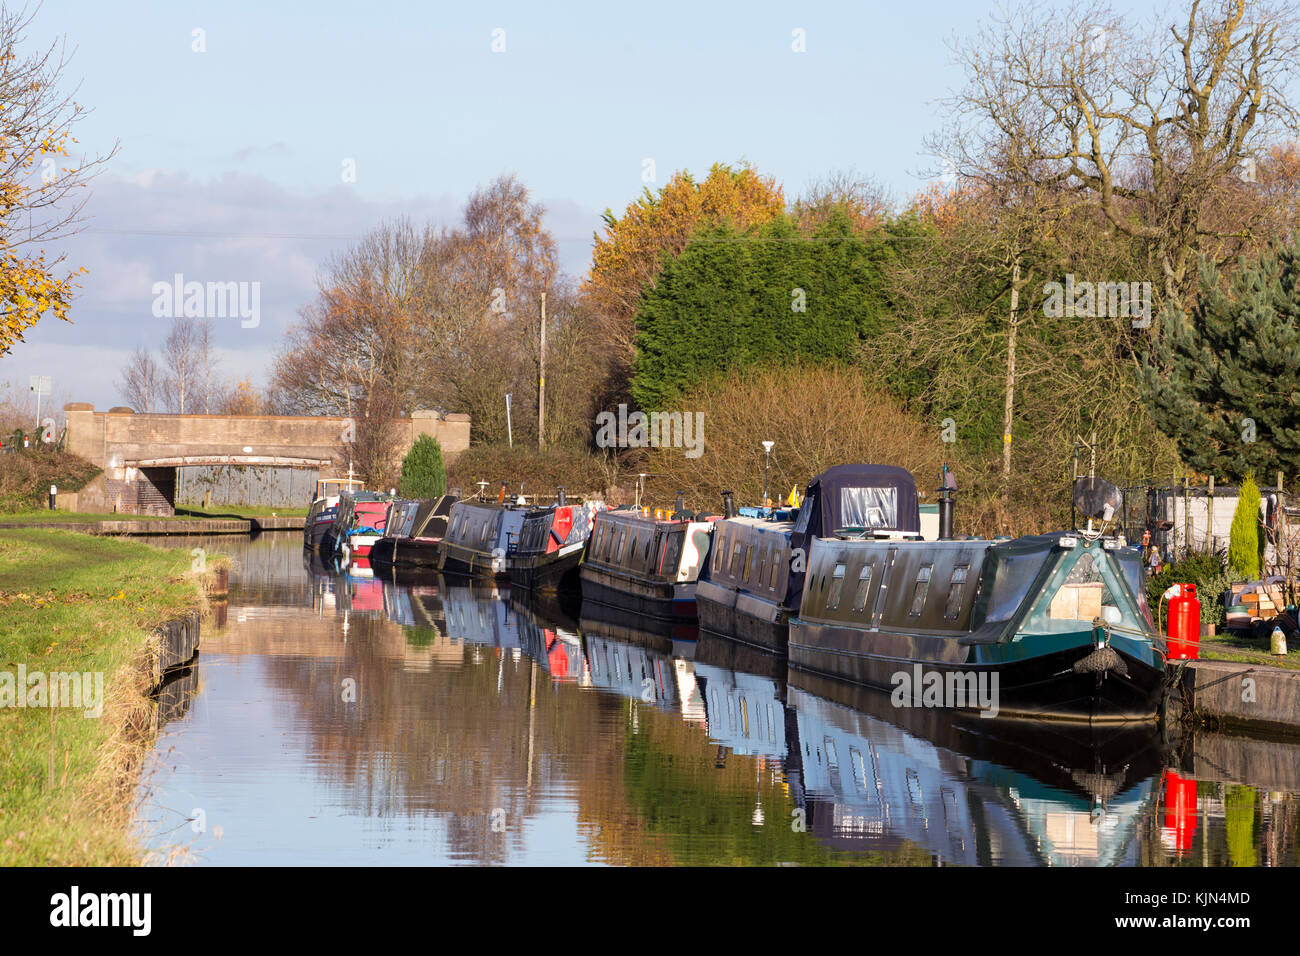 Narrow boats on The Trent and Mersey Canal in Elworth near Sandbach Cheshire UK - Stock Image